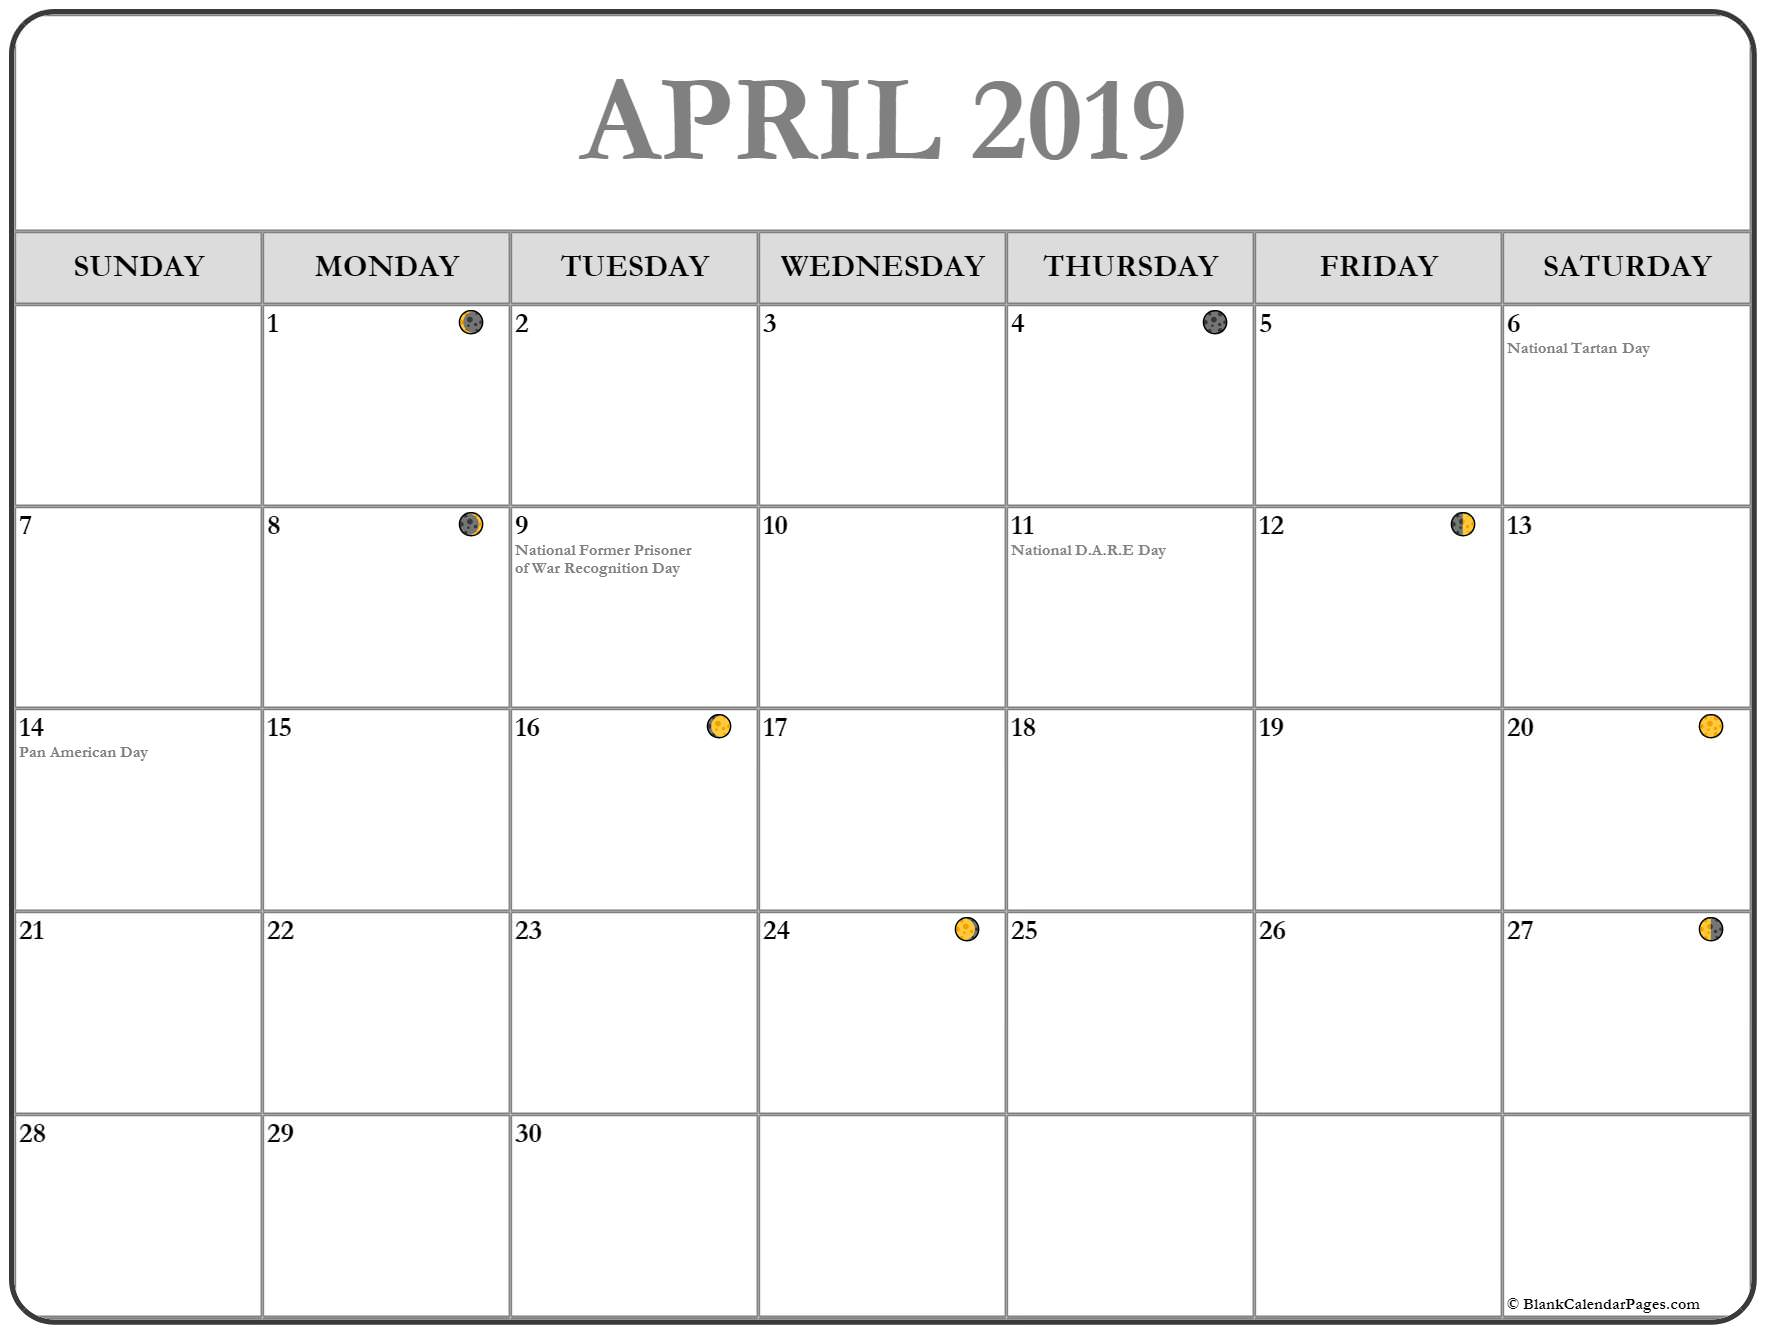 Full Moon Calendar April 2019